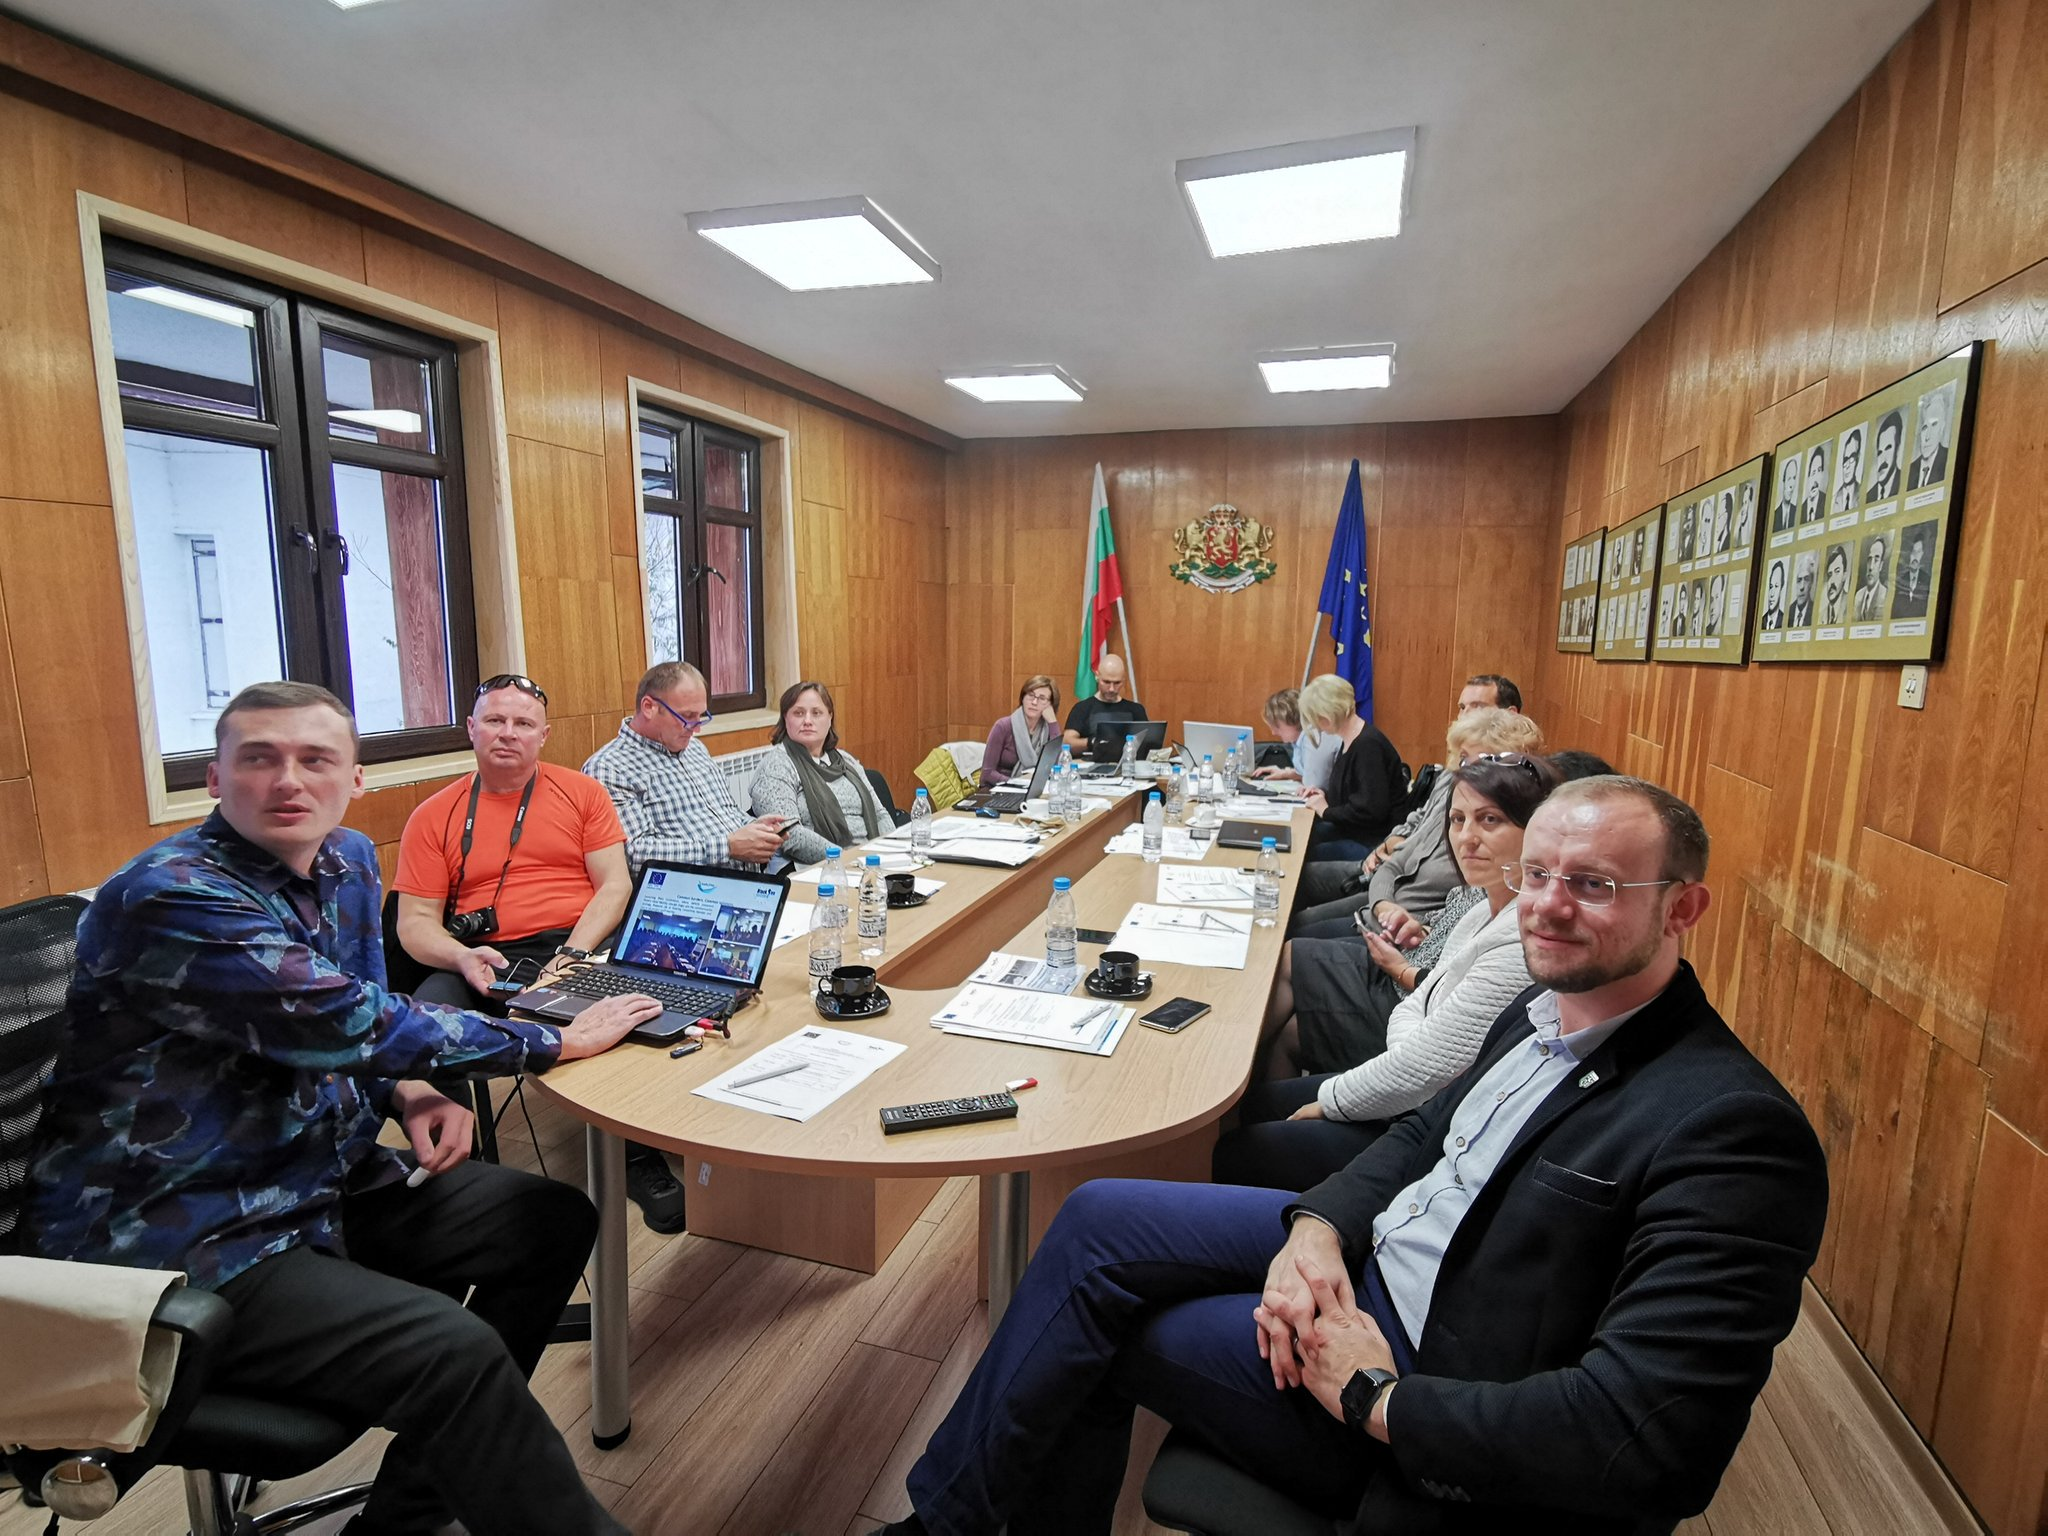 Project staff meeting was held in Malko Tarnovo